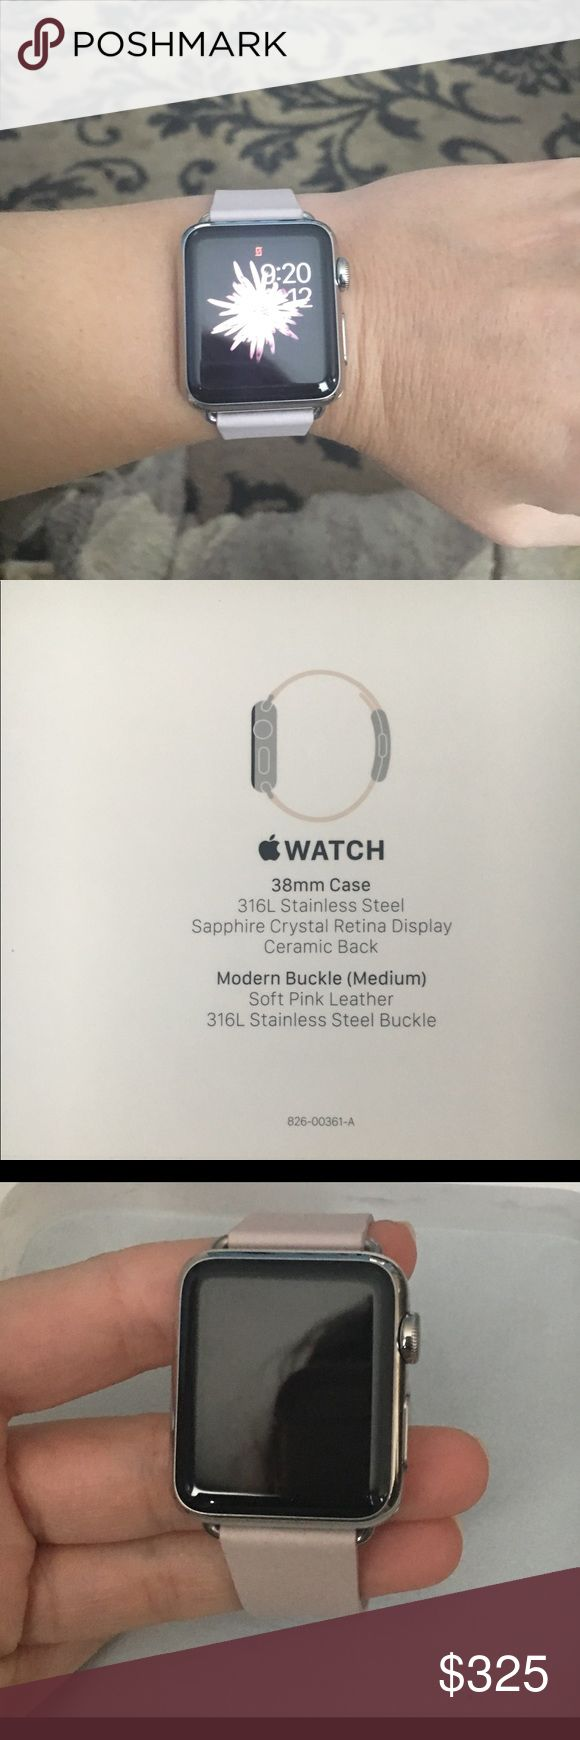 1st series, never worn Apple Watch. Priced a bit higher due to a leather band versus a sports band. Never worn. 38mm  Stainless Steel Buckle Sapphire Crystal Retina Display Ceramic Back Soft Pink Leather Band (medium) Original box and charger Apple Jewelry